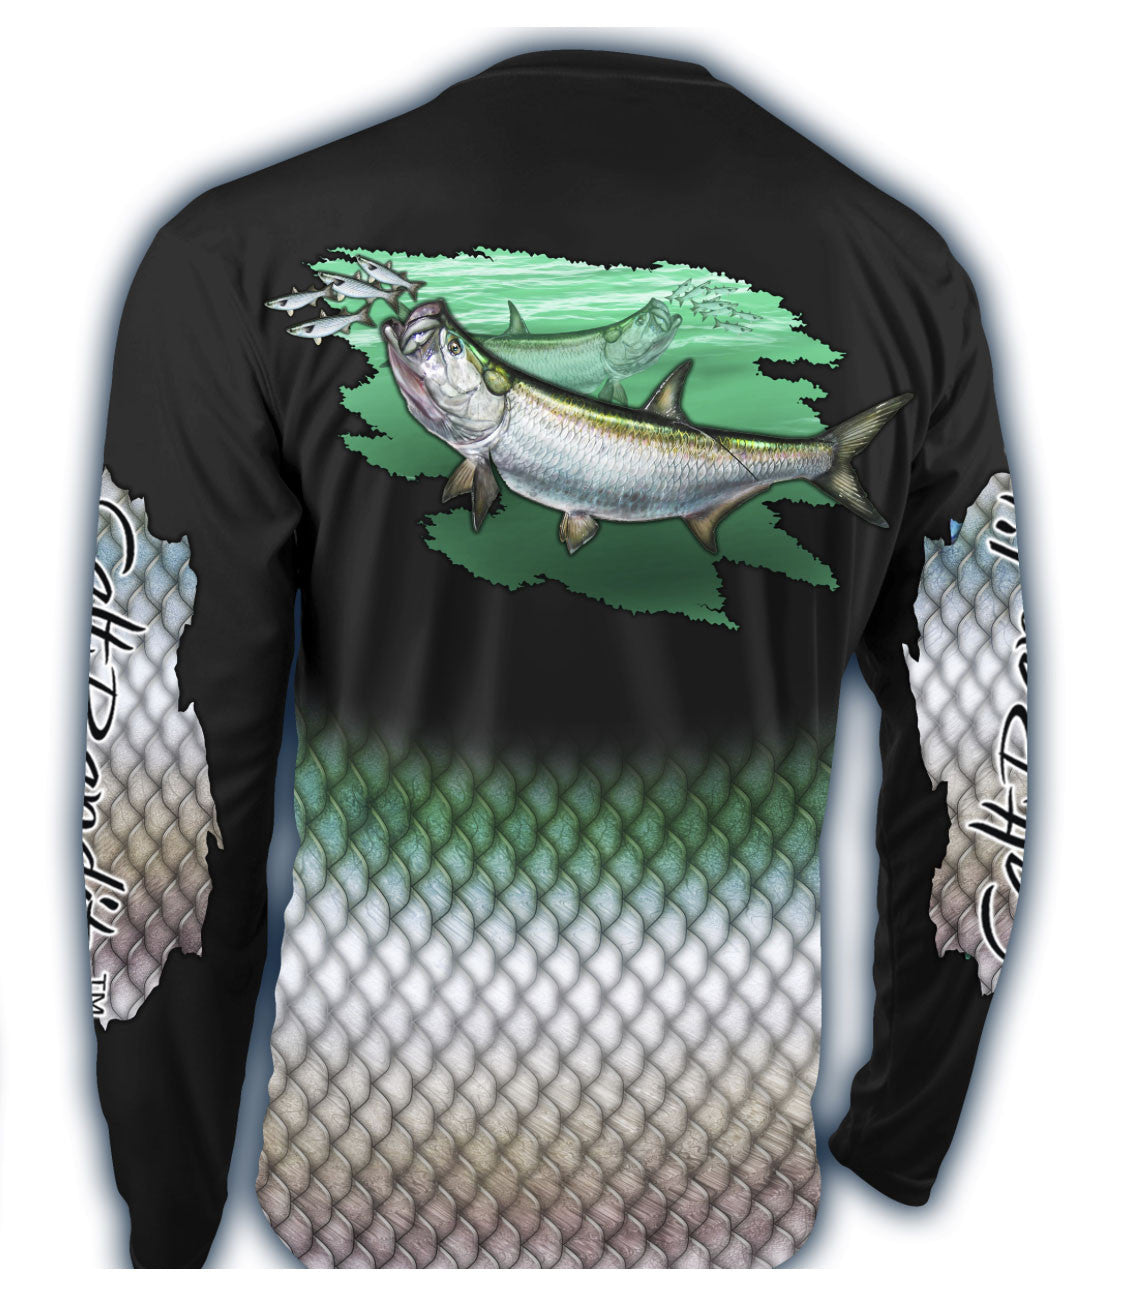 SaltBandits™ Tarpon Performance Long Sleeve T-shirt